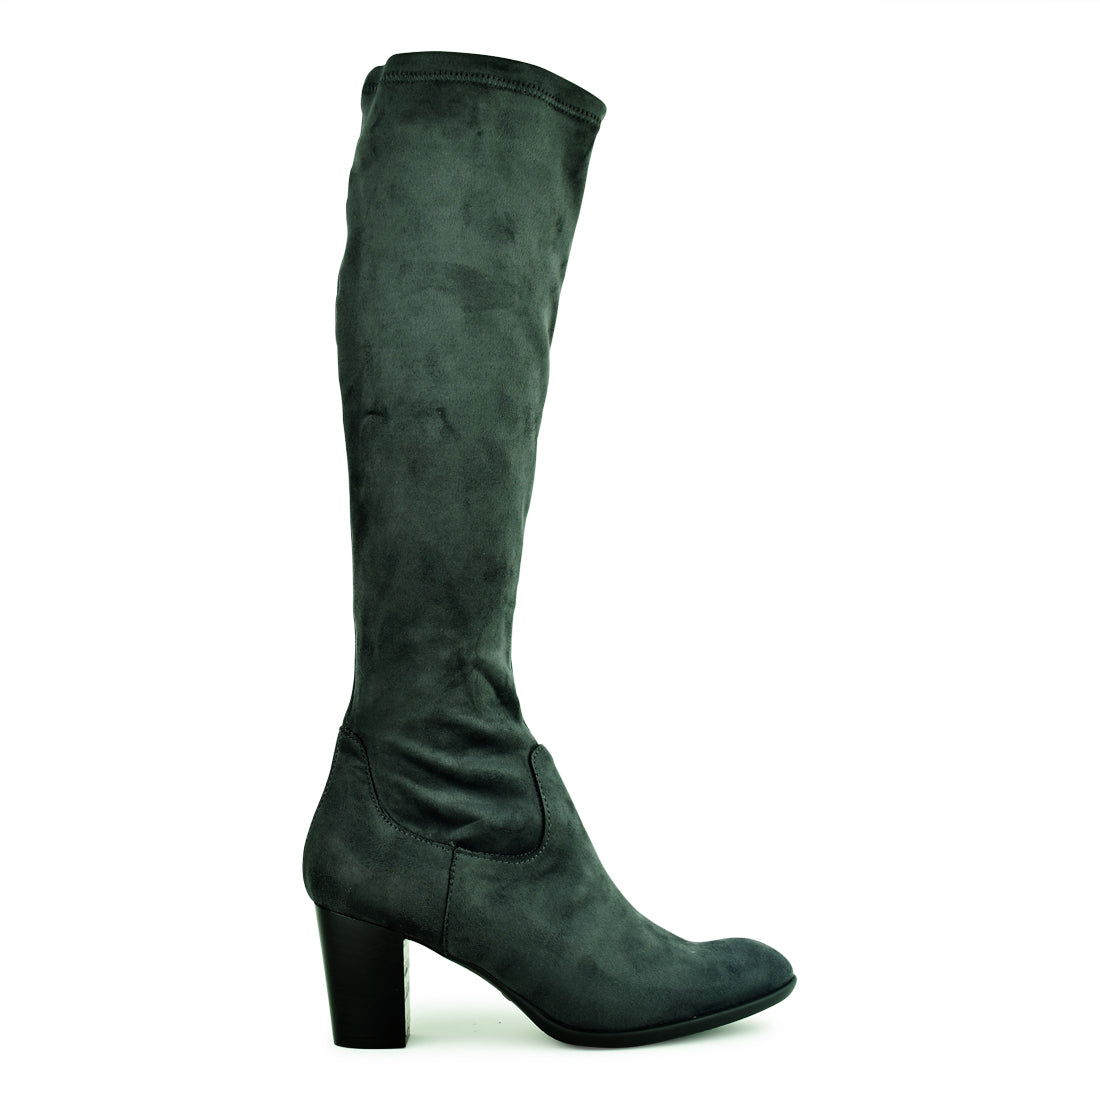 LENORE - Neo High Heel Long Boot Grey